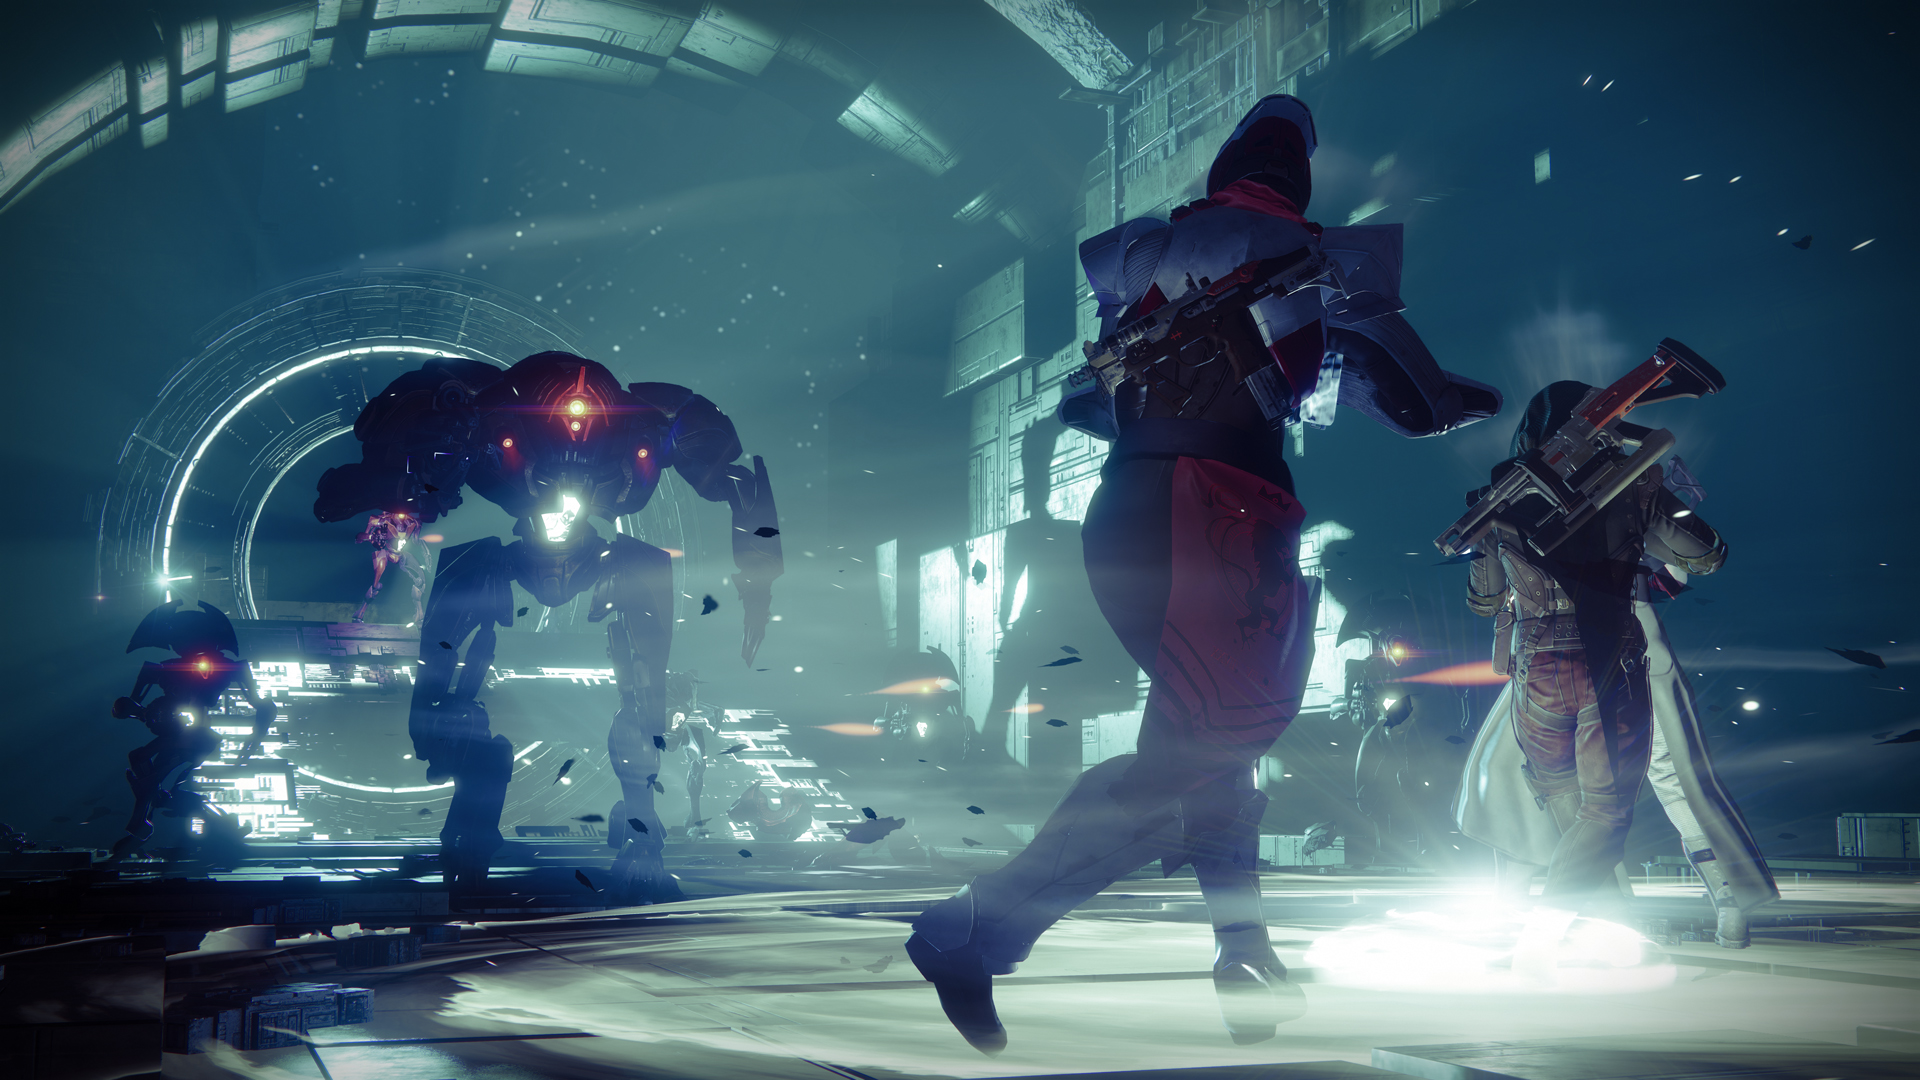 Bungie lays out detailed Destiny 2 update schedule (update)